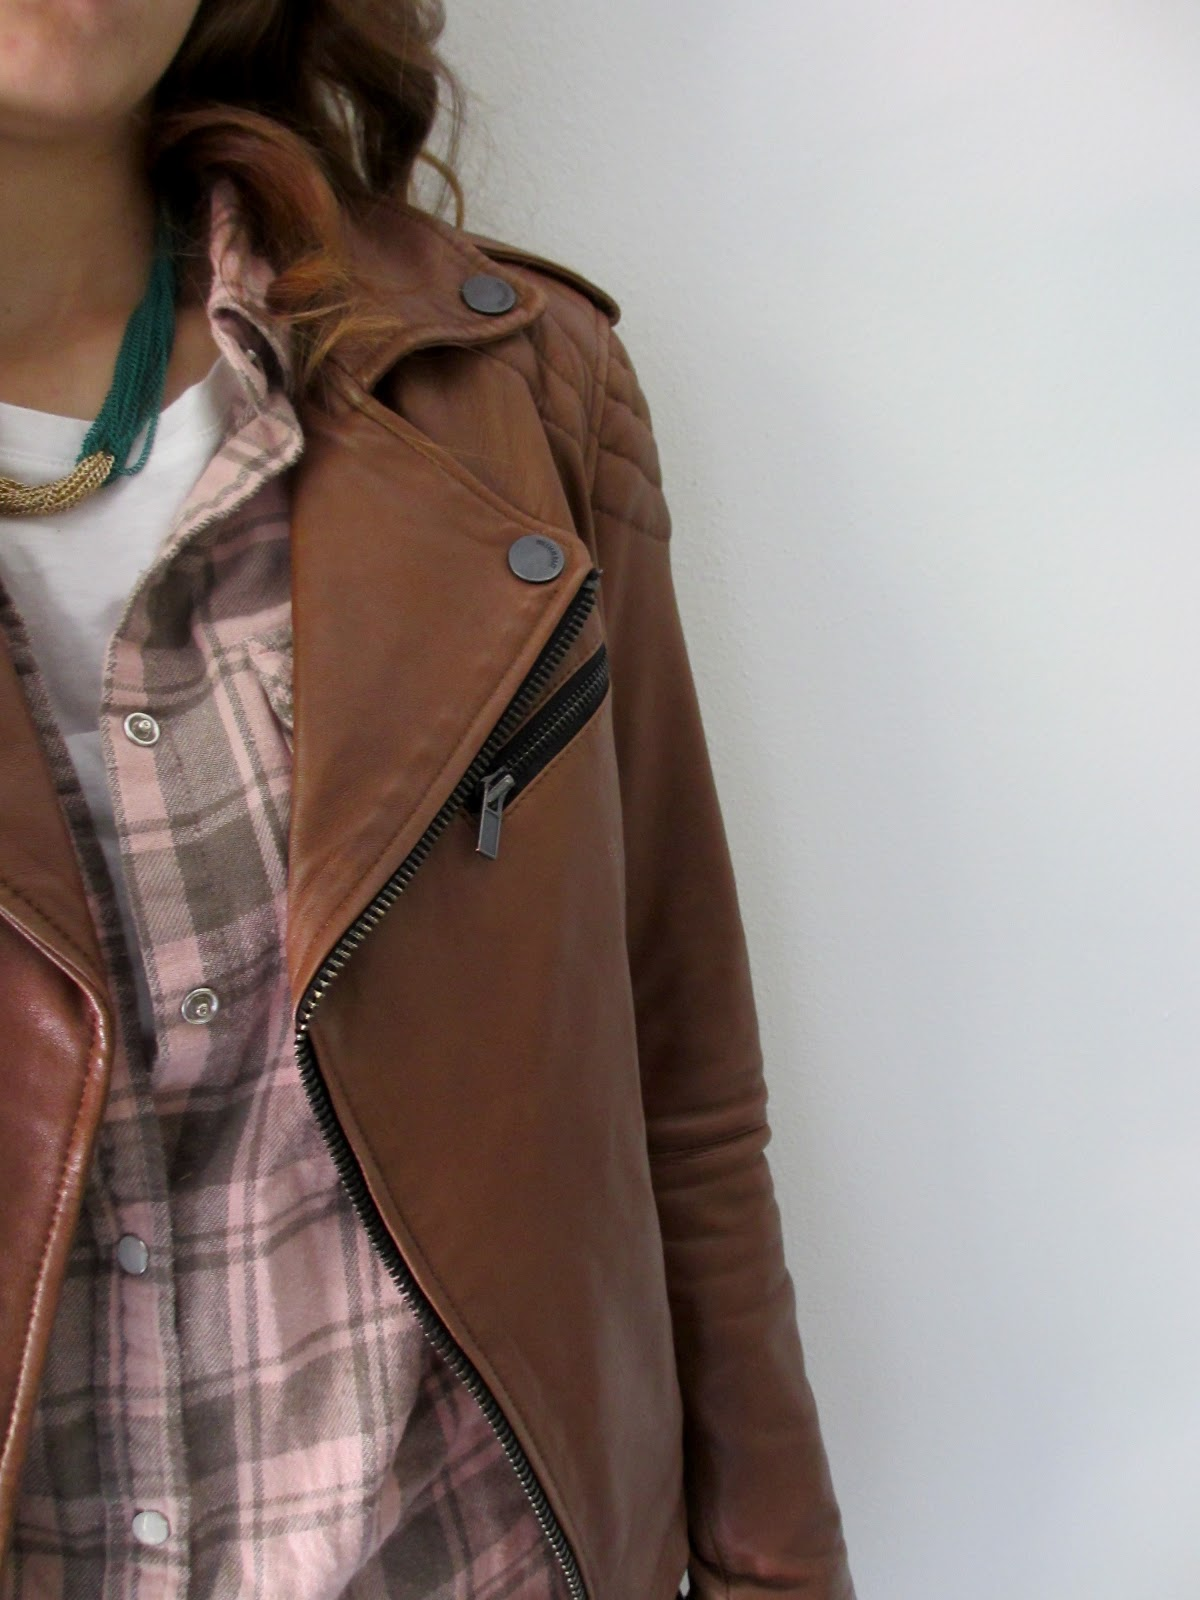 Leather jacket target - Leather Jacket William Rast For Target Flannel Shirt Old Target Necklace Charmin Charlies Belt Thrifted White Tee Urban Outfitters